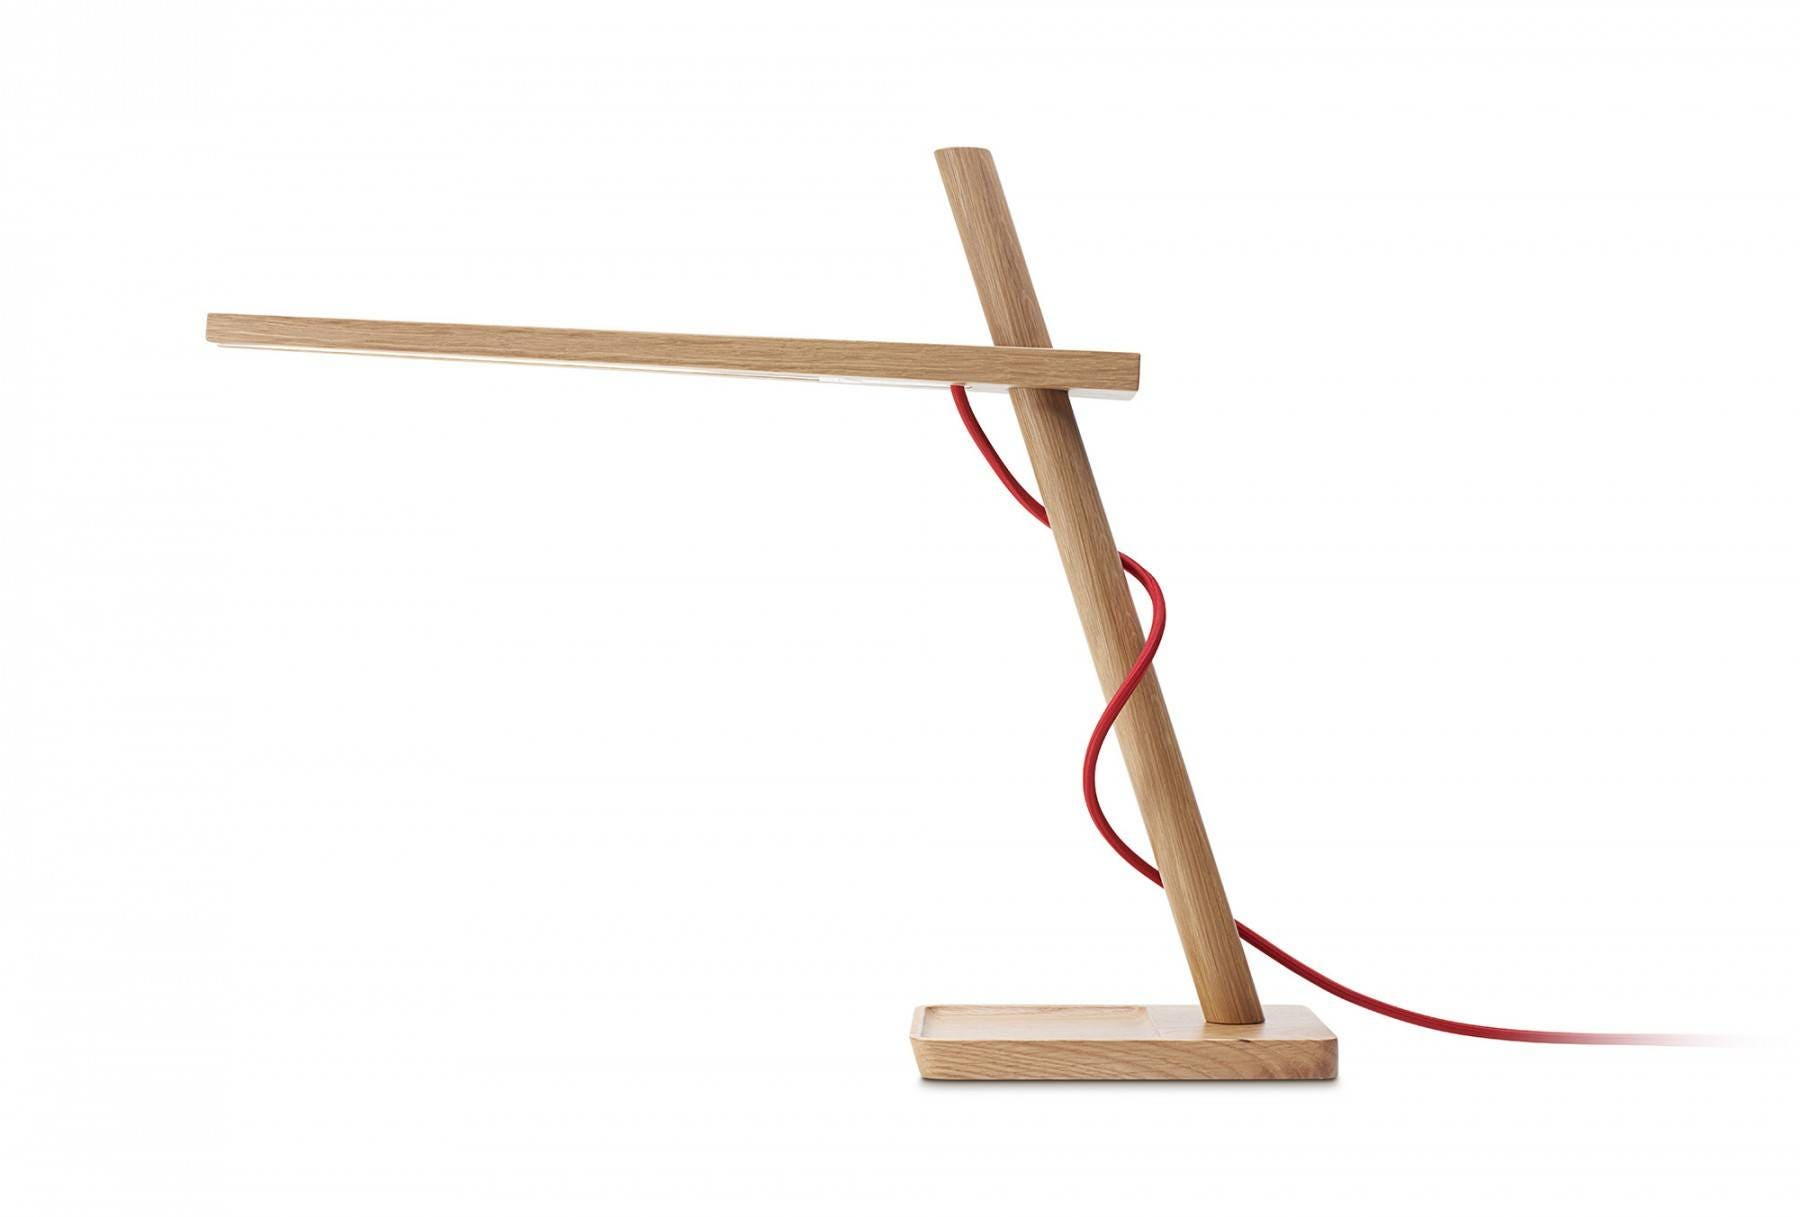 Pablo Clamp Freestanding Table Lamp